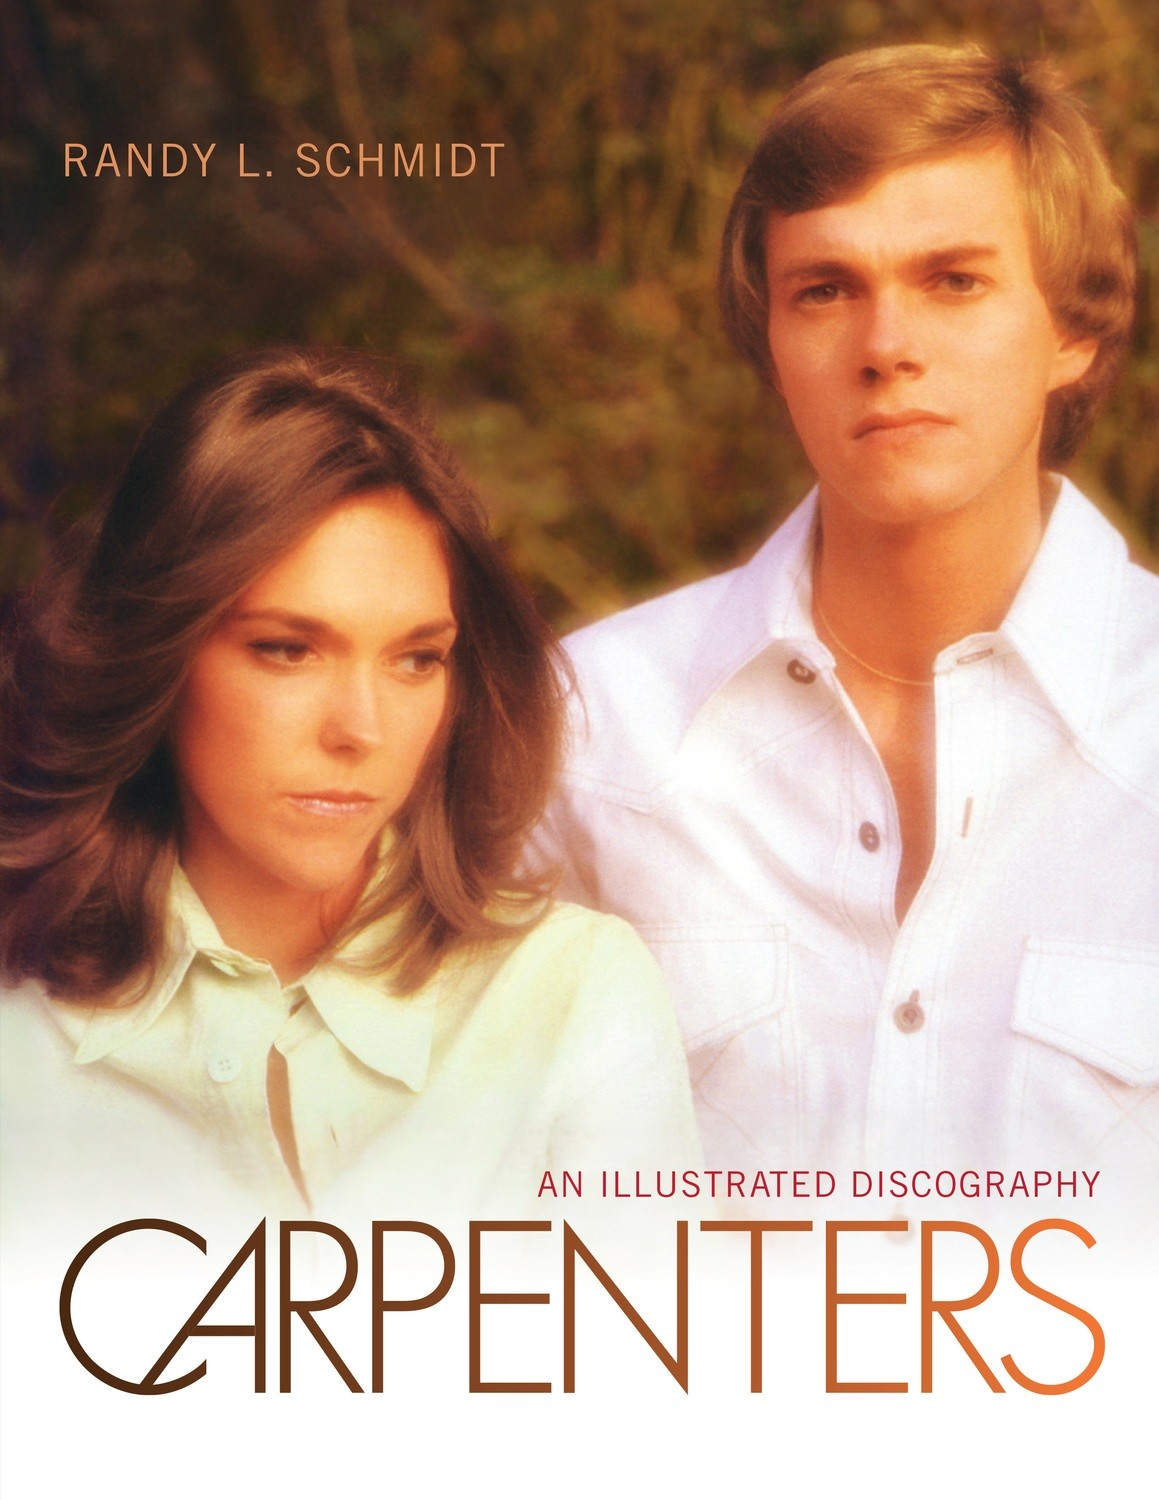 CARPENTERS: AN ILLUSTRATED DISCOGRAPHY - HARDCOVER (SIGNED)